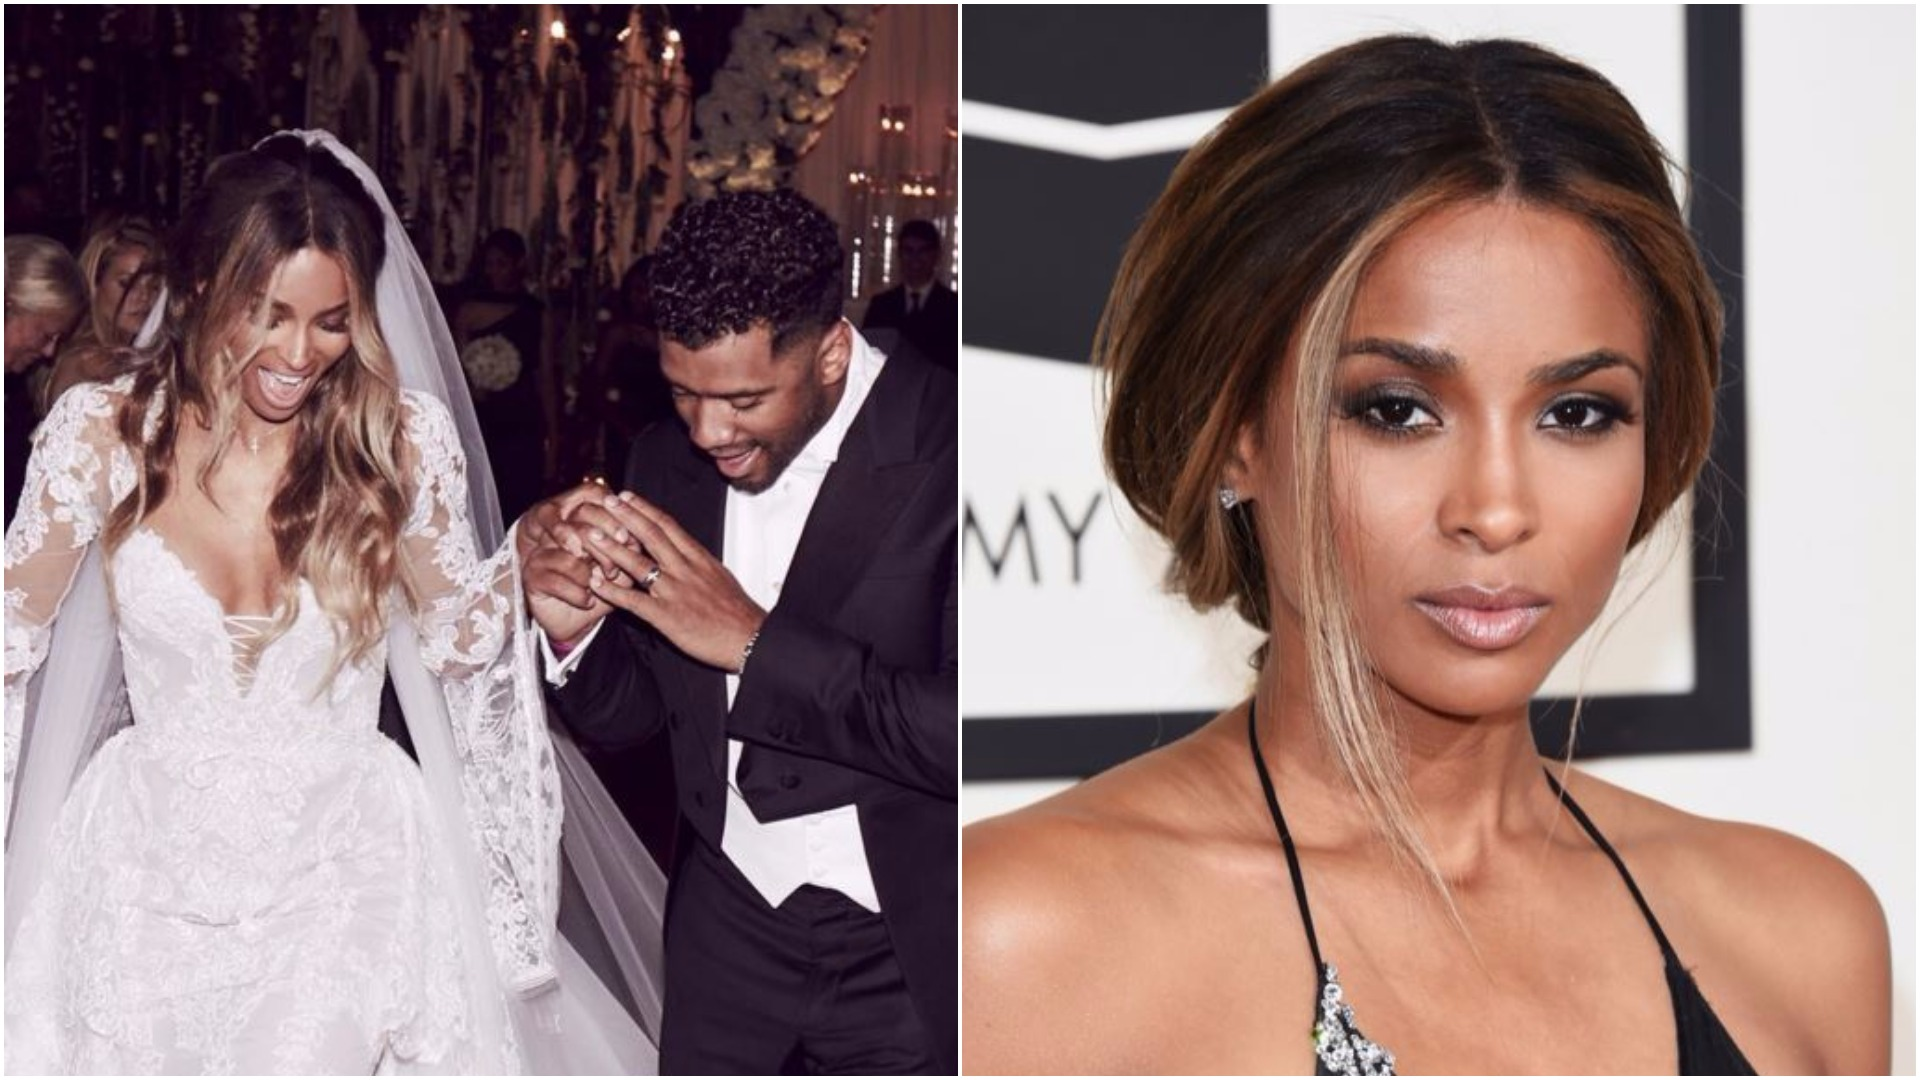 Ciara has tied the knot with her NFL boyfriend in Liverpool of all places